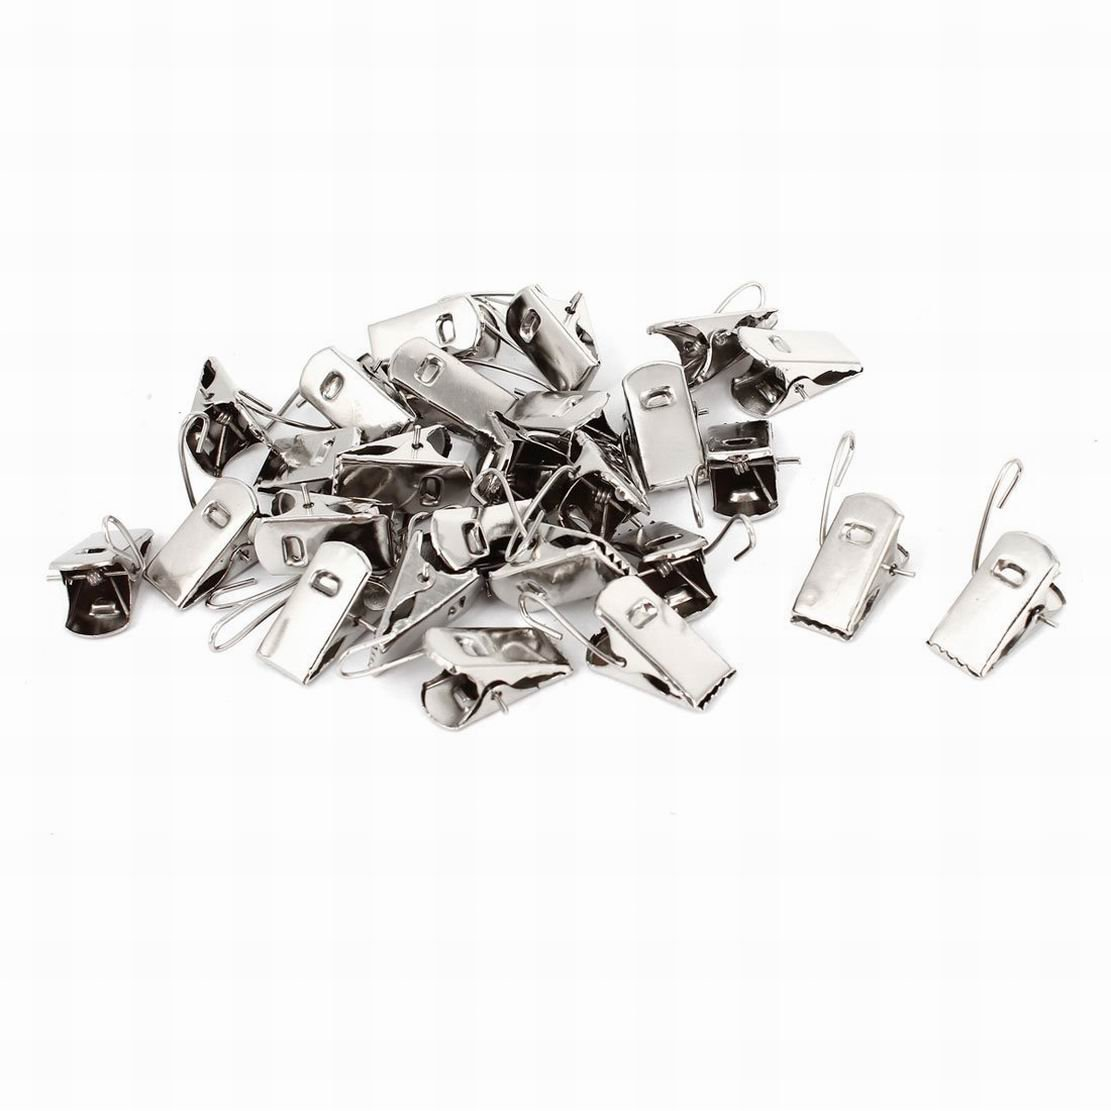 Fuxell Metal Window Drapes Curtain Clips Clamps 40 Pcs Silver Tone